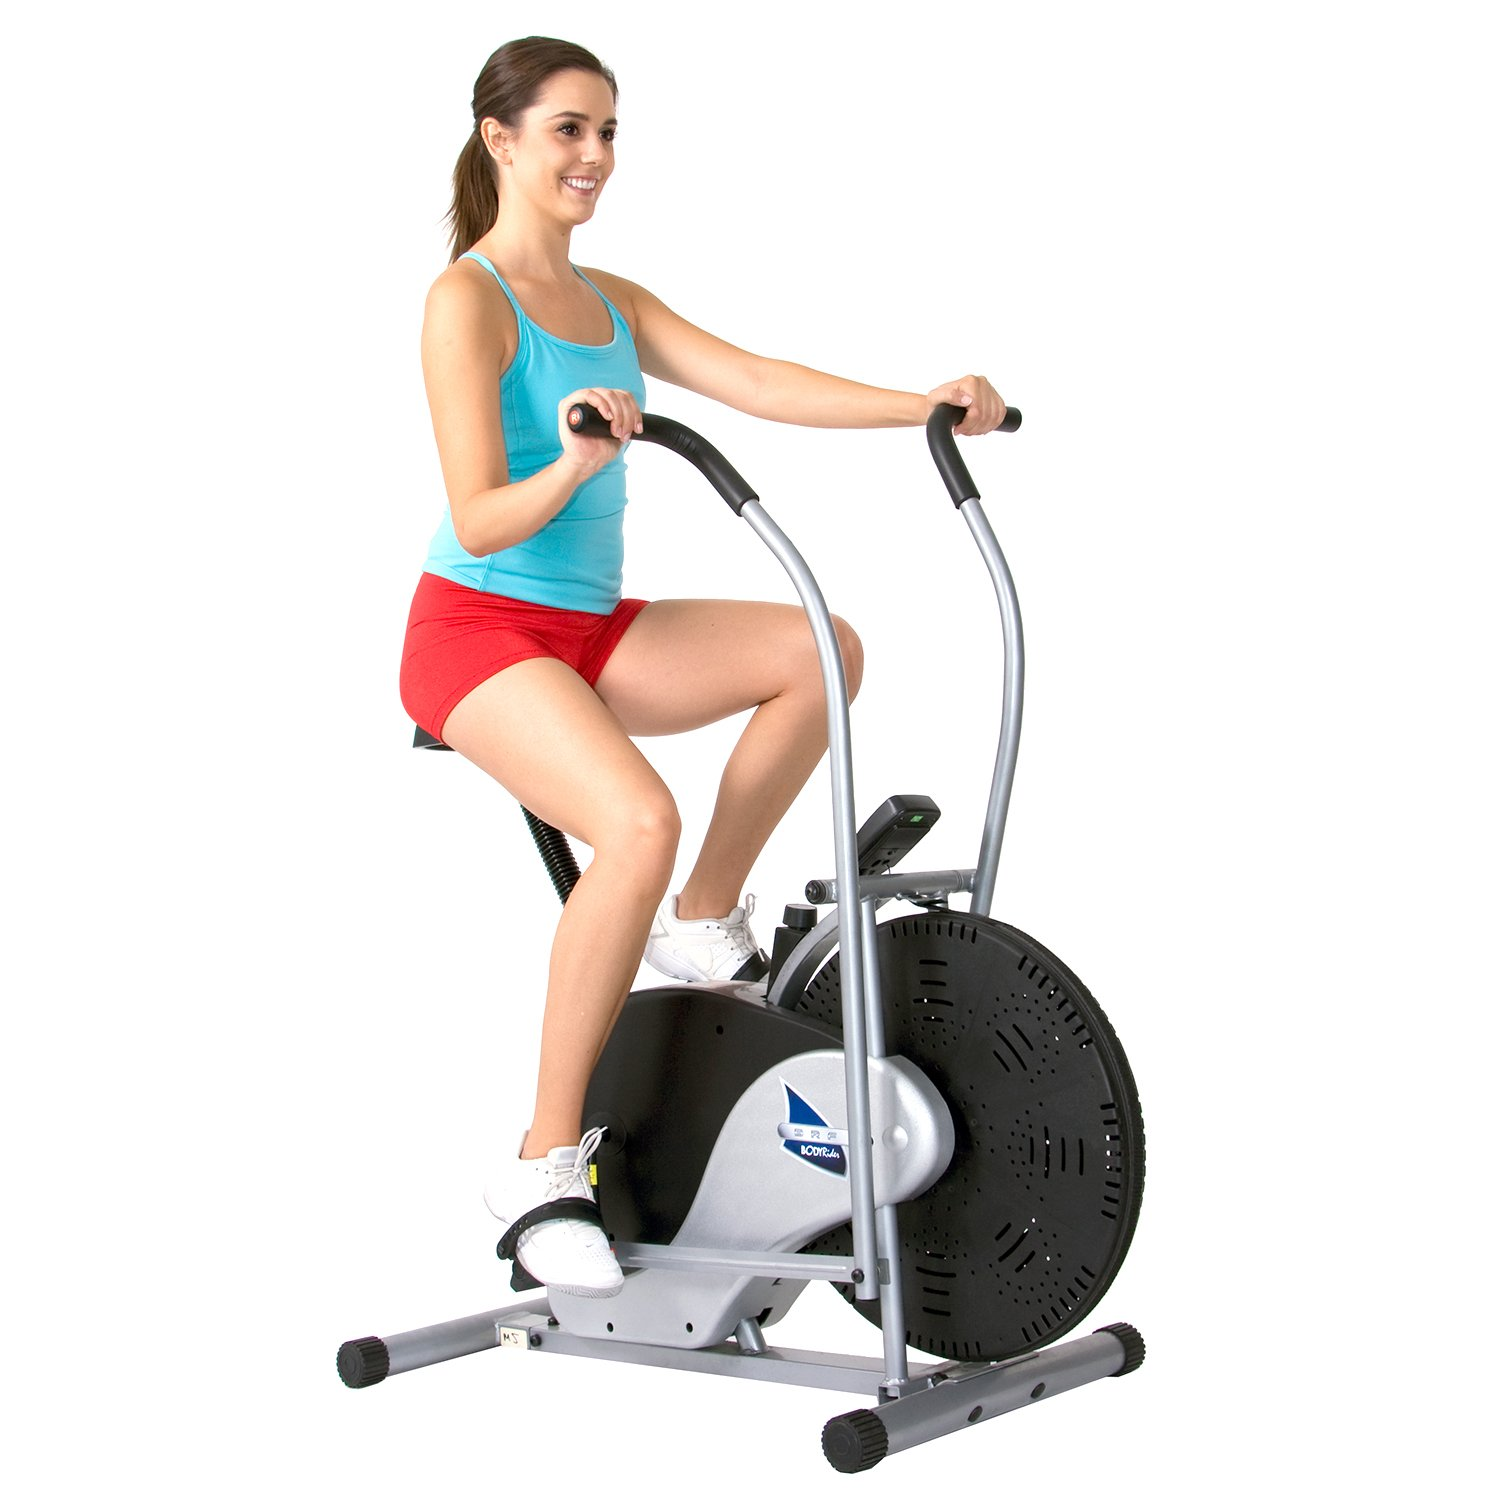 Body Rider Exercise Upright Fan Bike (with UPDATED Softer Seat) Stationary Fitness/Adjustable Seat BRF700 by Body Rider (Image #4)